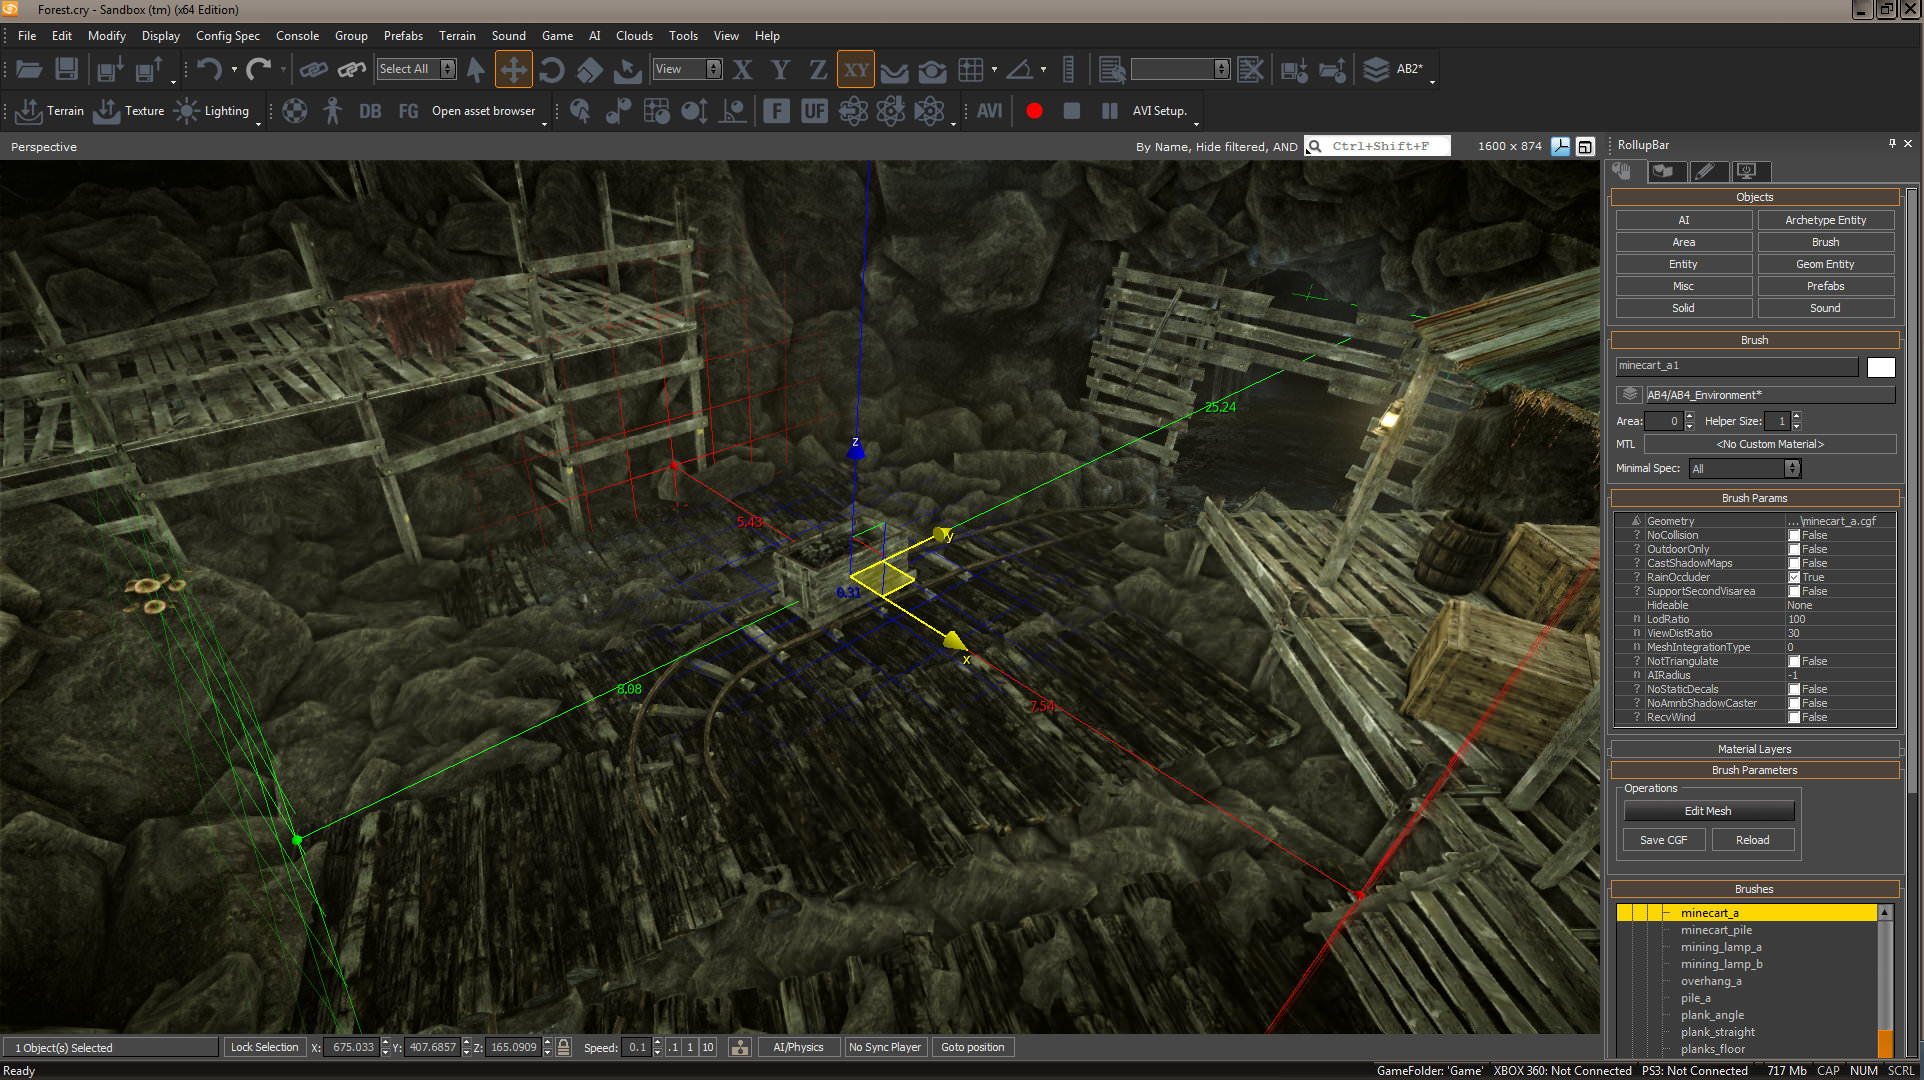 CryENGINE Free SDK picture or screenshot